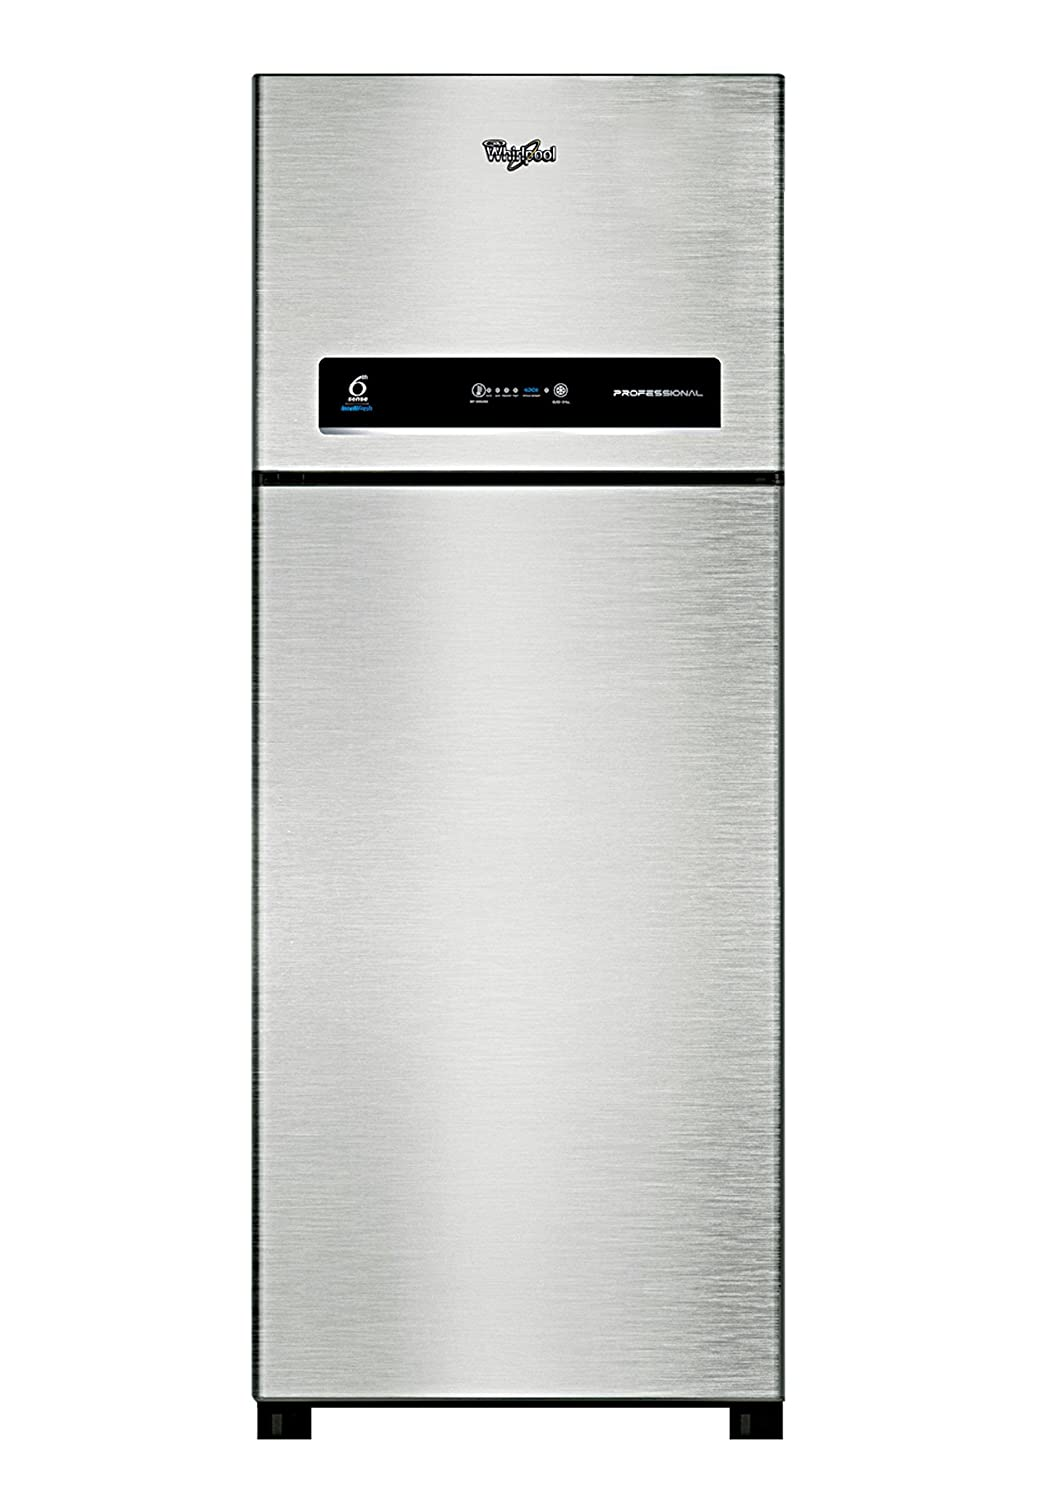 Whirlpool PRO 495 ELT 3S (480 L) Alpha Steel Double Door 480 L ...